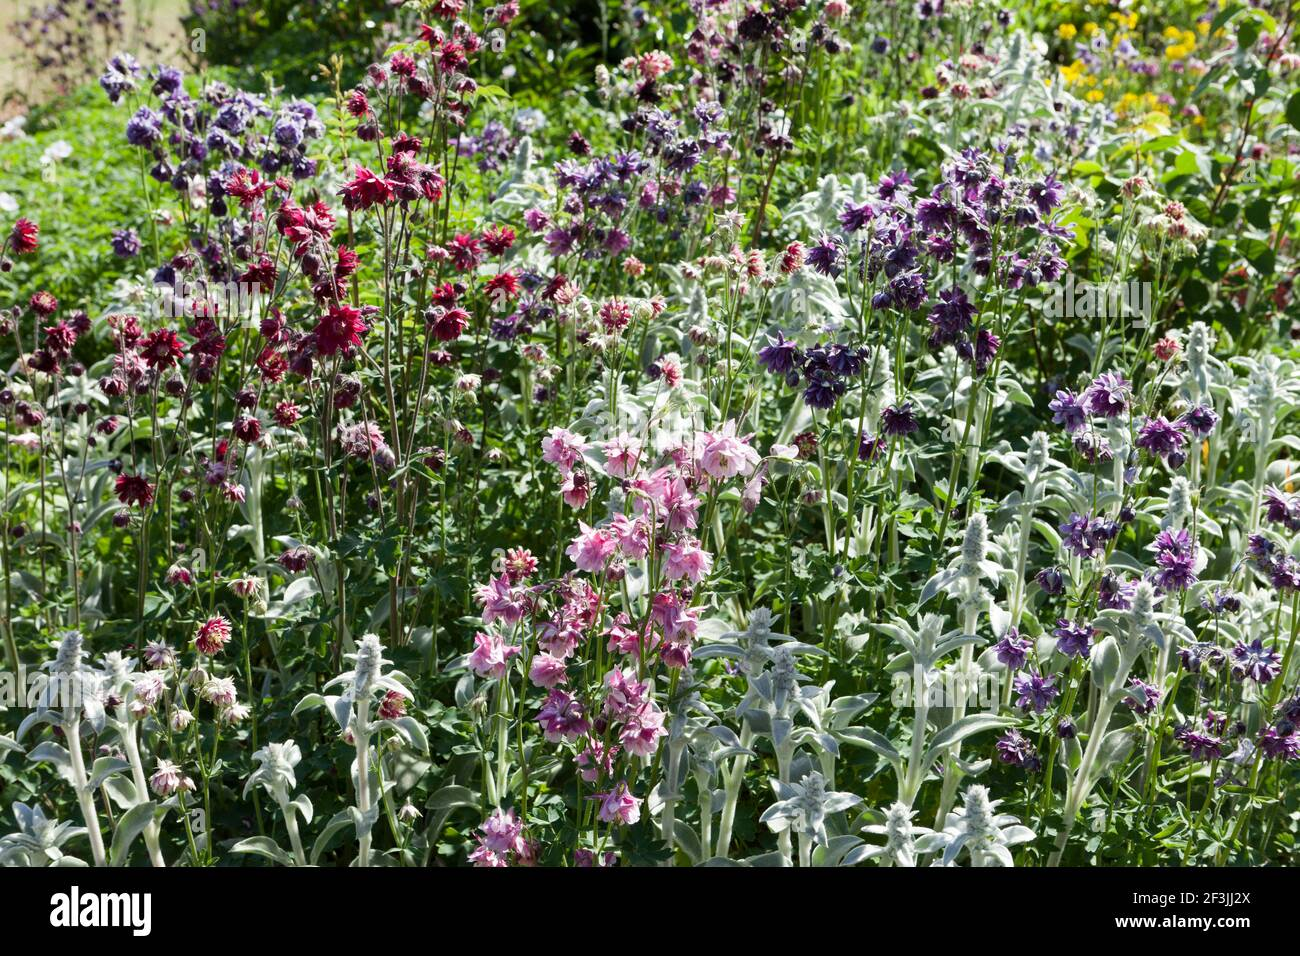 Herbaceous border planted with a mix of clematis-flowered, Columbine, Aquilegia, including clematis-flowered, long-spurred and pompom varieties, and S Stock Photo